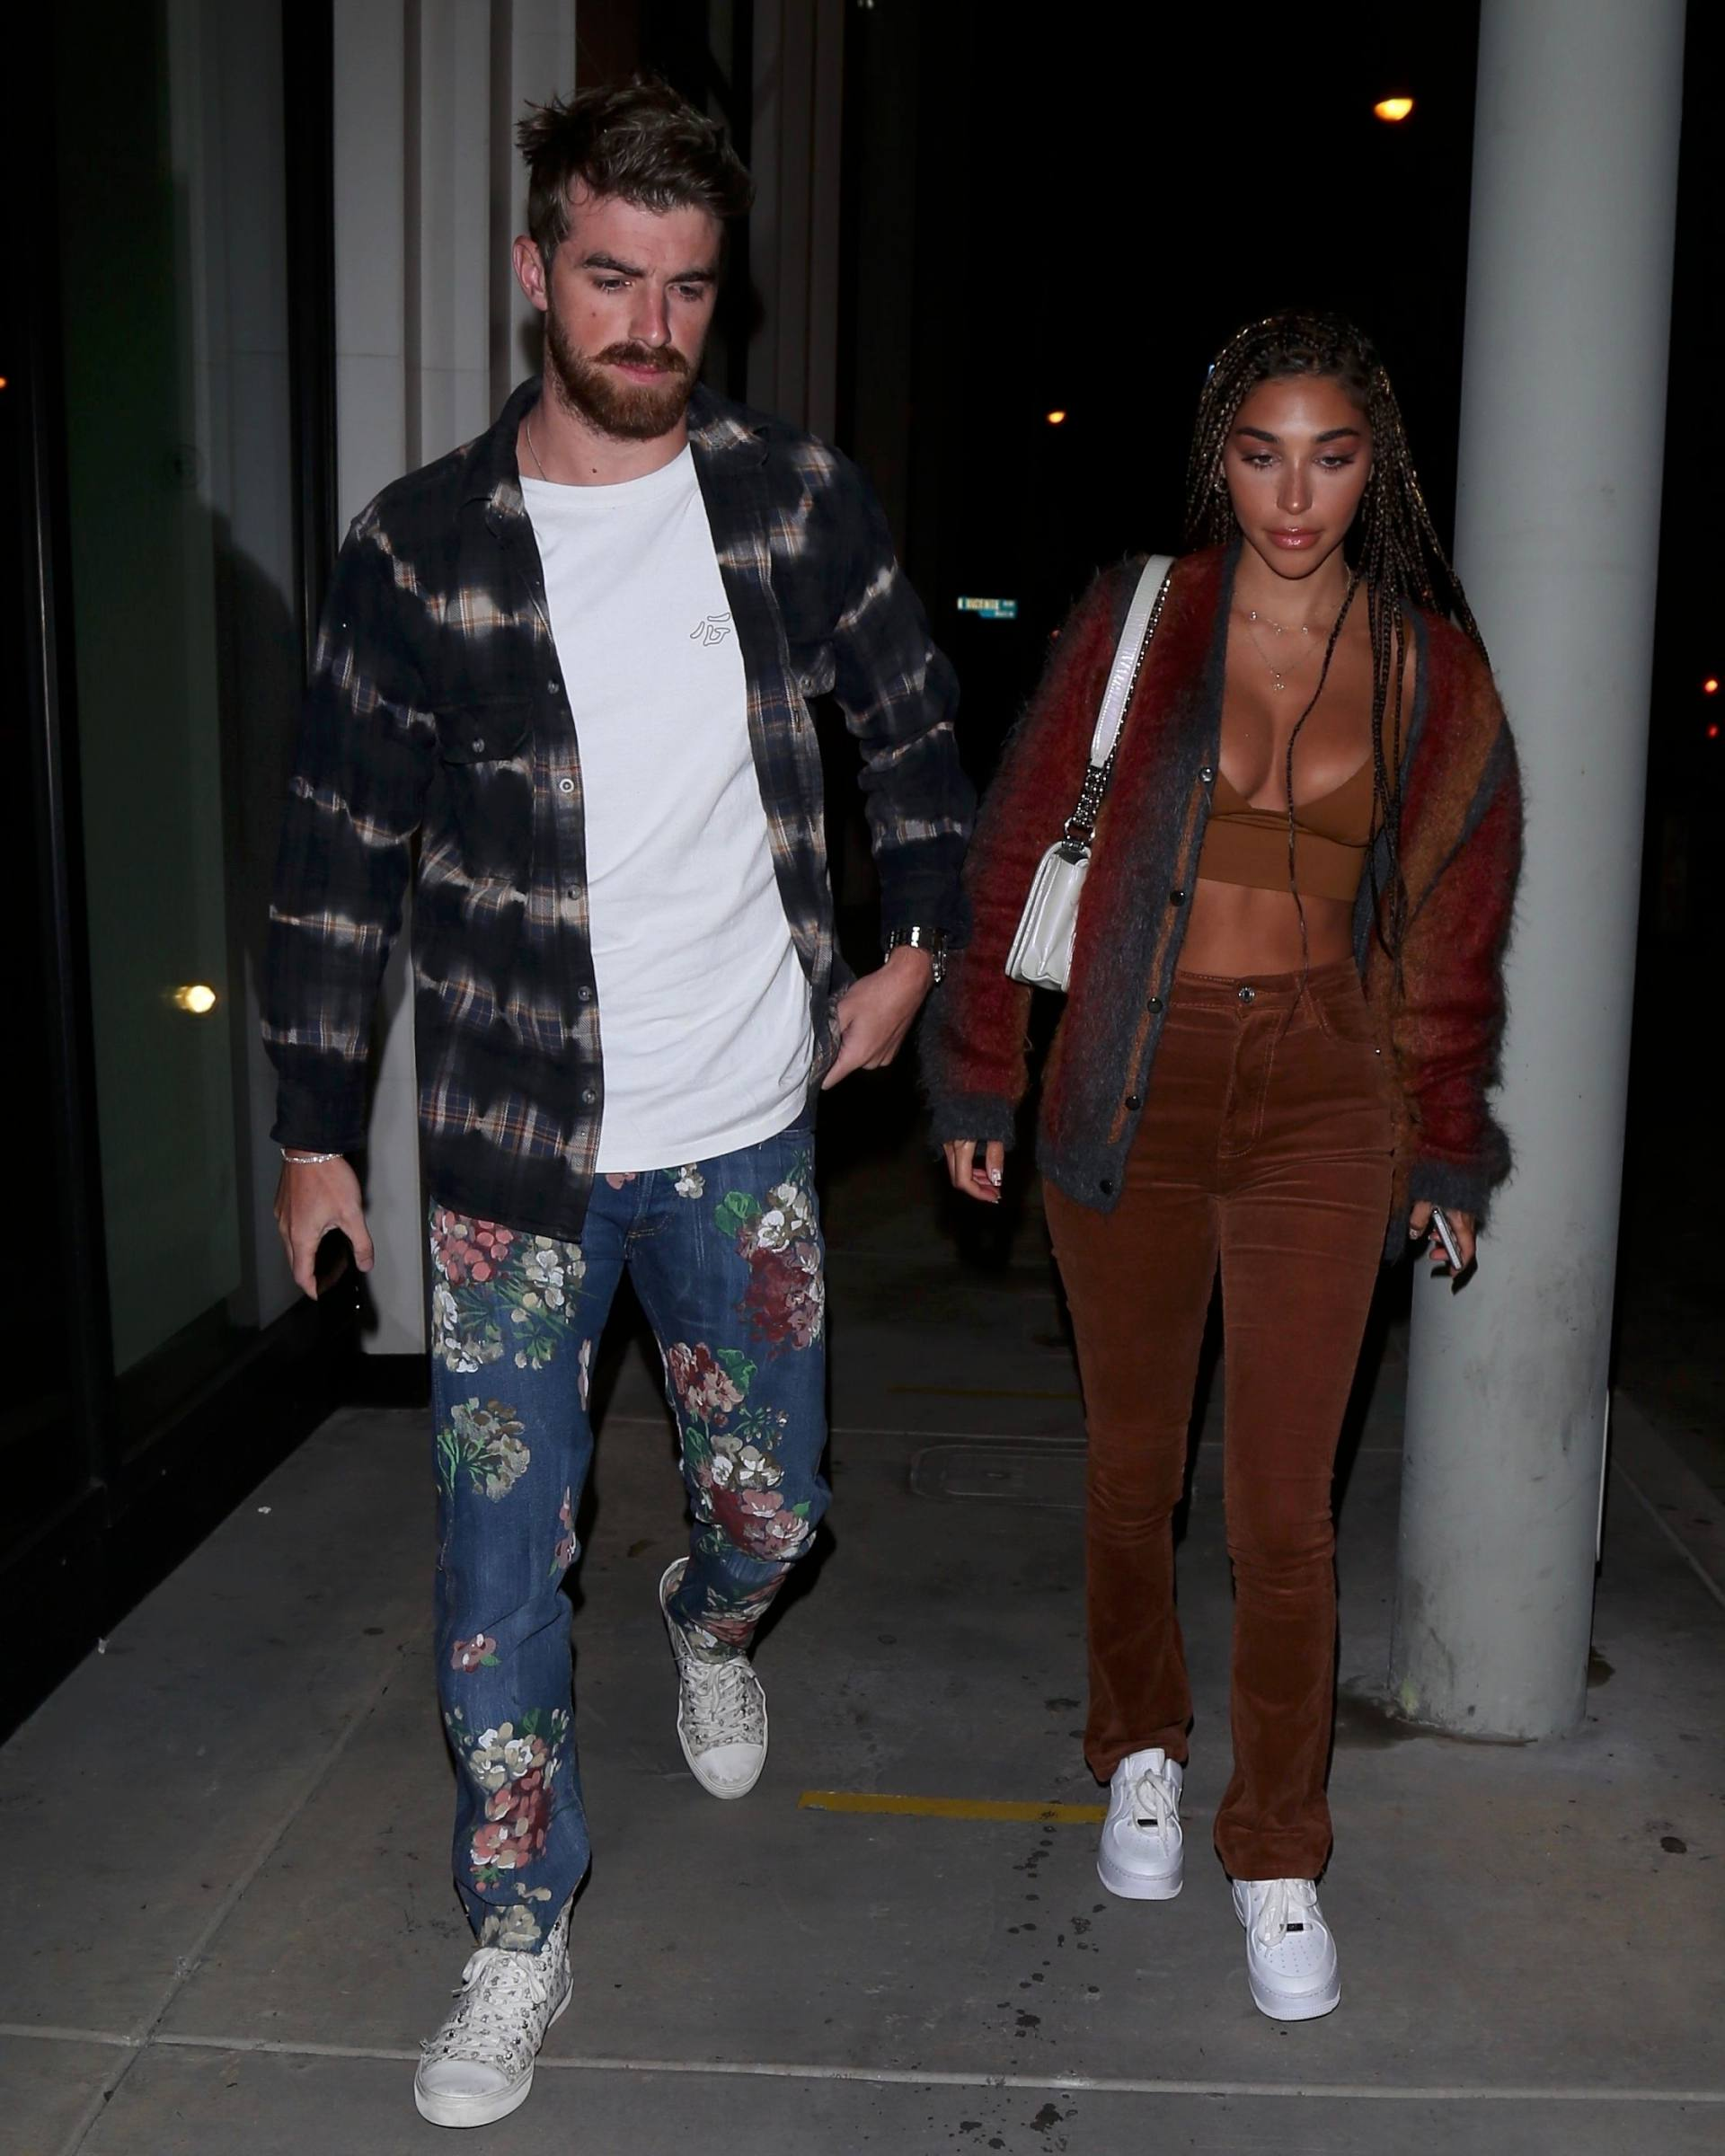 Chantel Jeffries – Sexy Boobs In Big Cleavage At Catch Restaurant In West Hollywood 0004